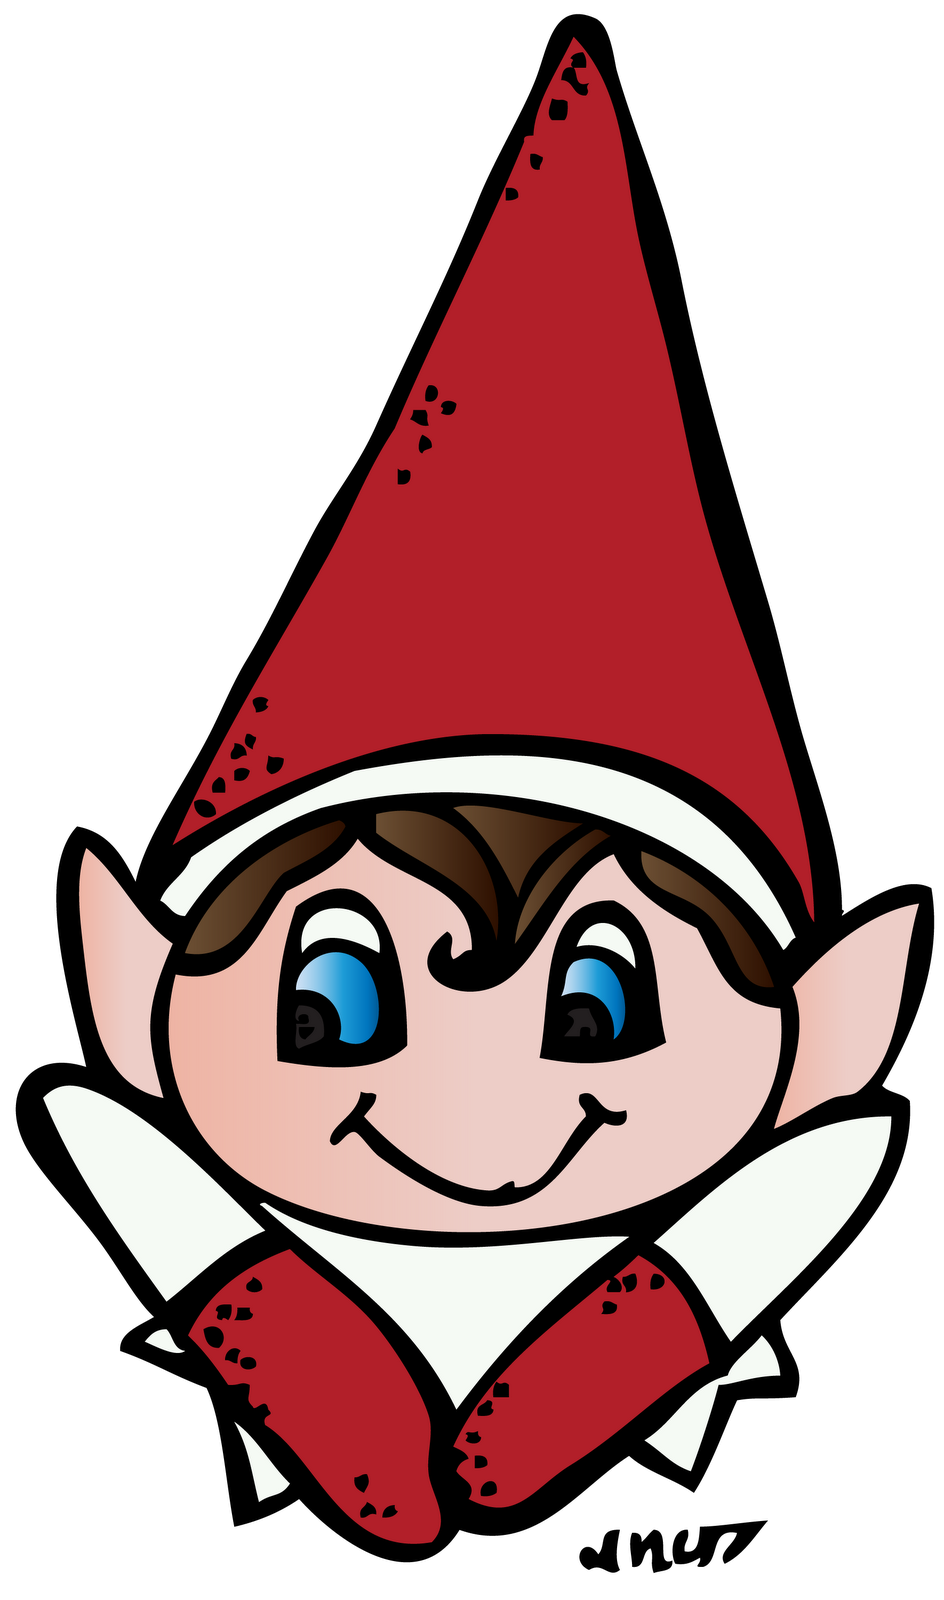 944x1600 28 Collection Of Elf On The Shelf Clipart Free High Quality